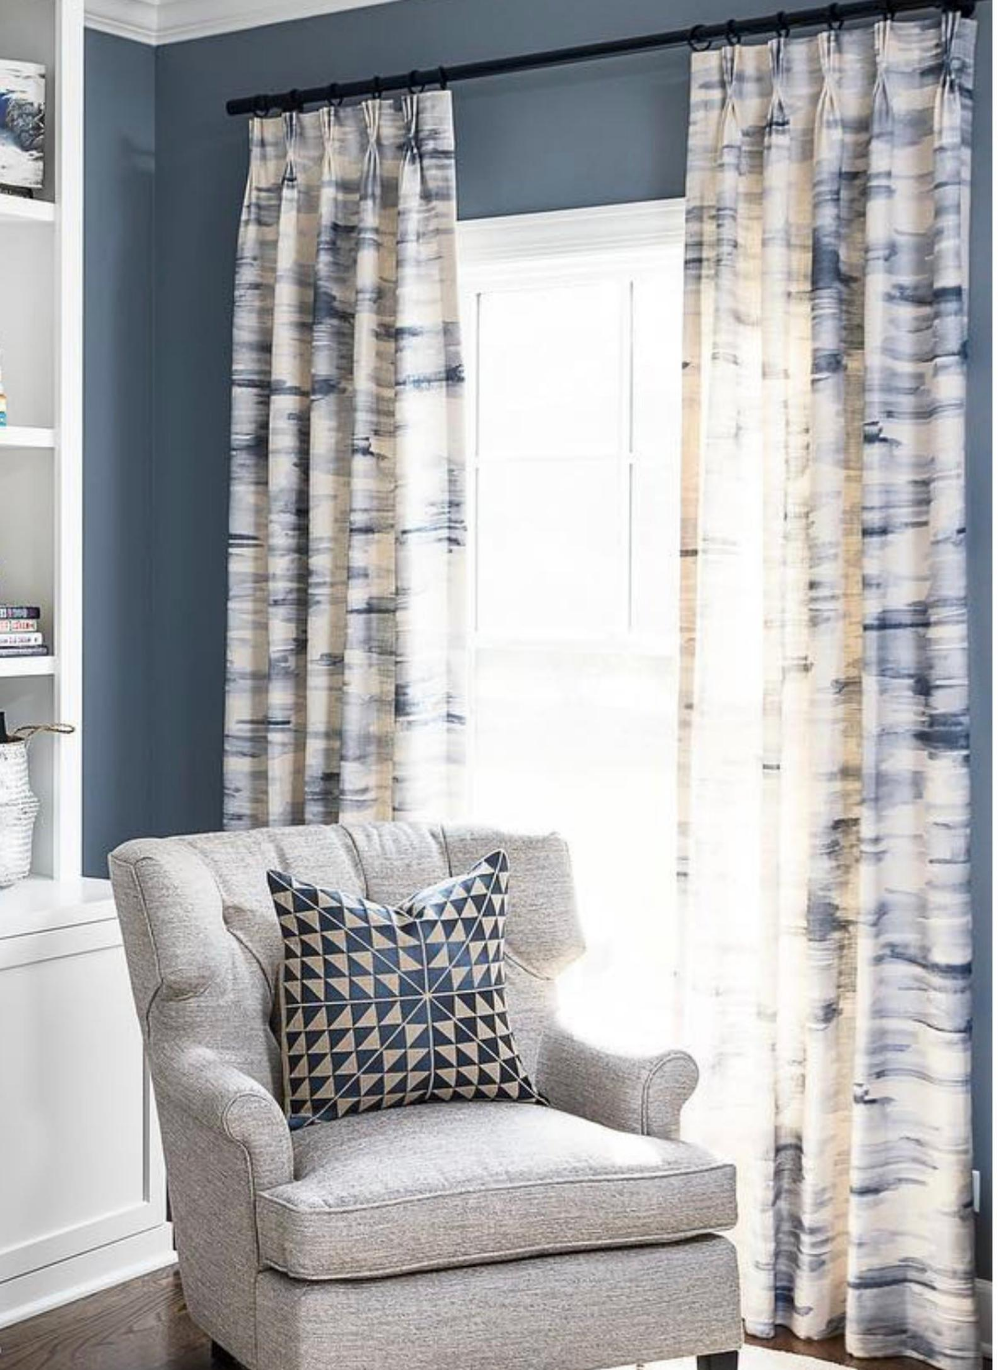 Blue White Curtains Gray White Drapes Curtain Panels Watercolor Print Navy And White Curtains Blue And White Dots Linen Curtains Colorblocl In 2020 Navy And White Curtains Curtains Living Room Blue